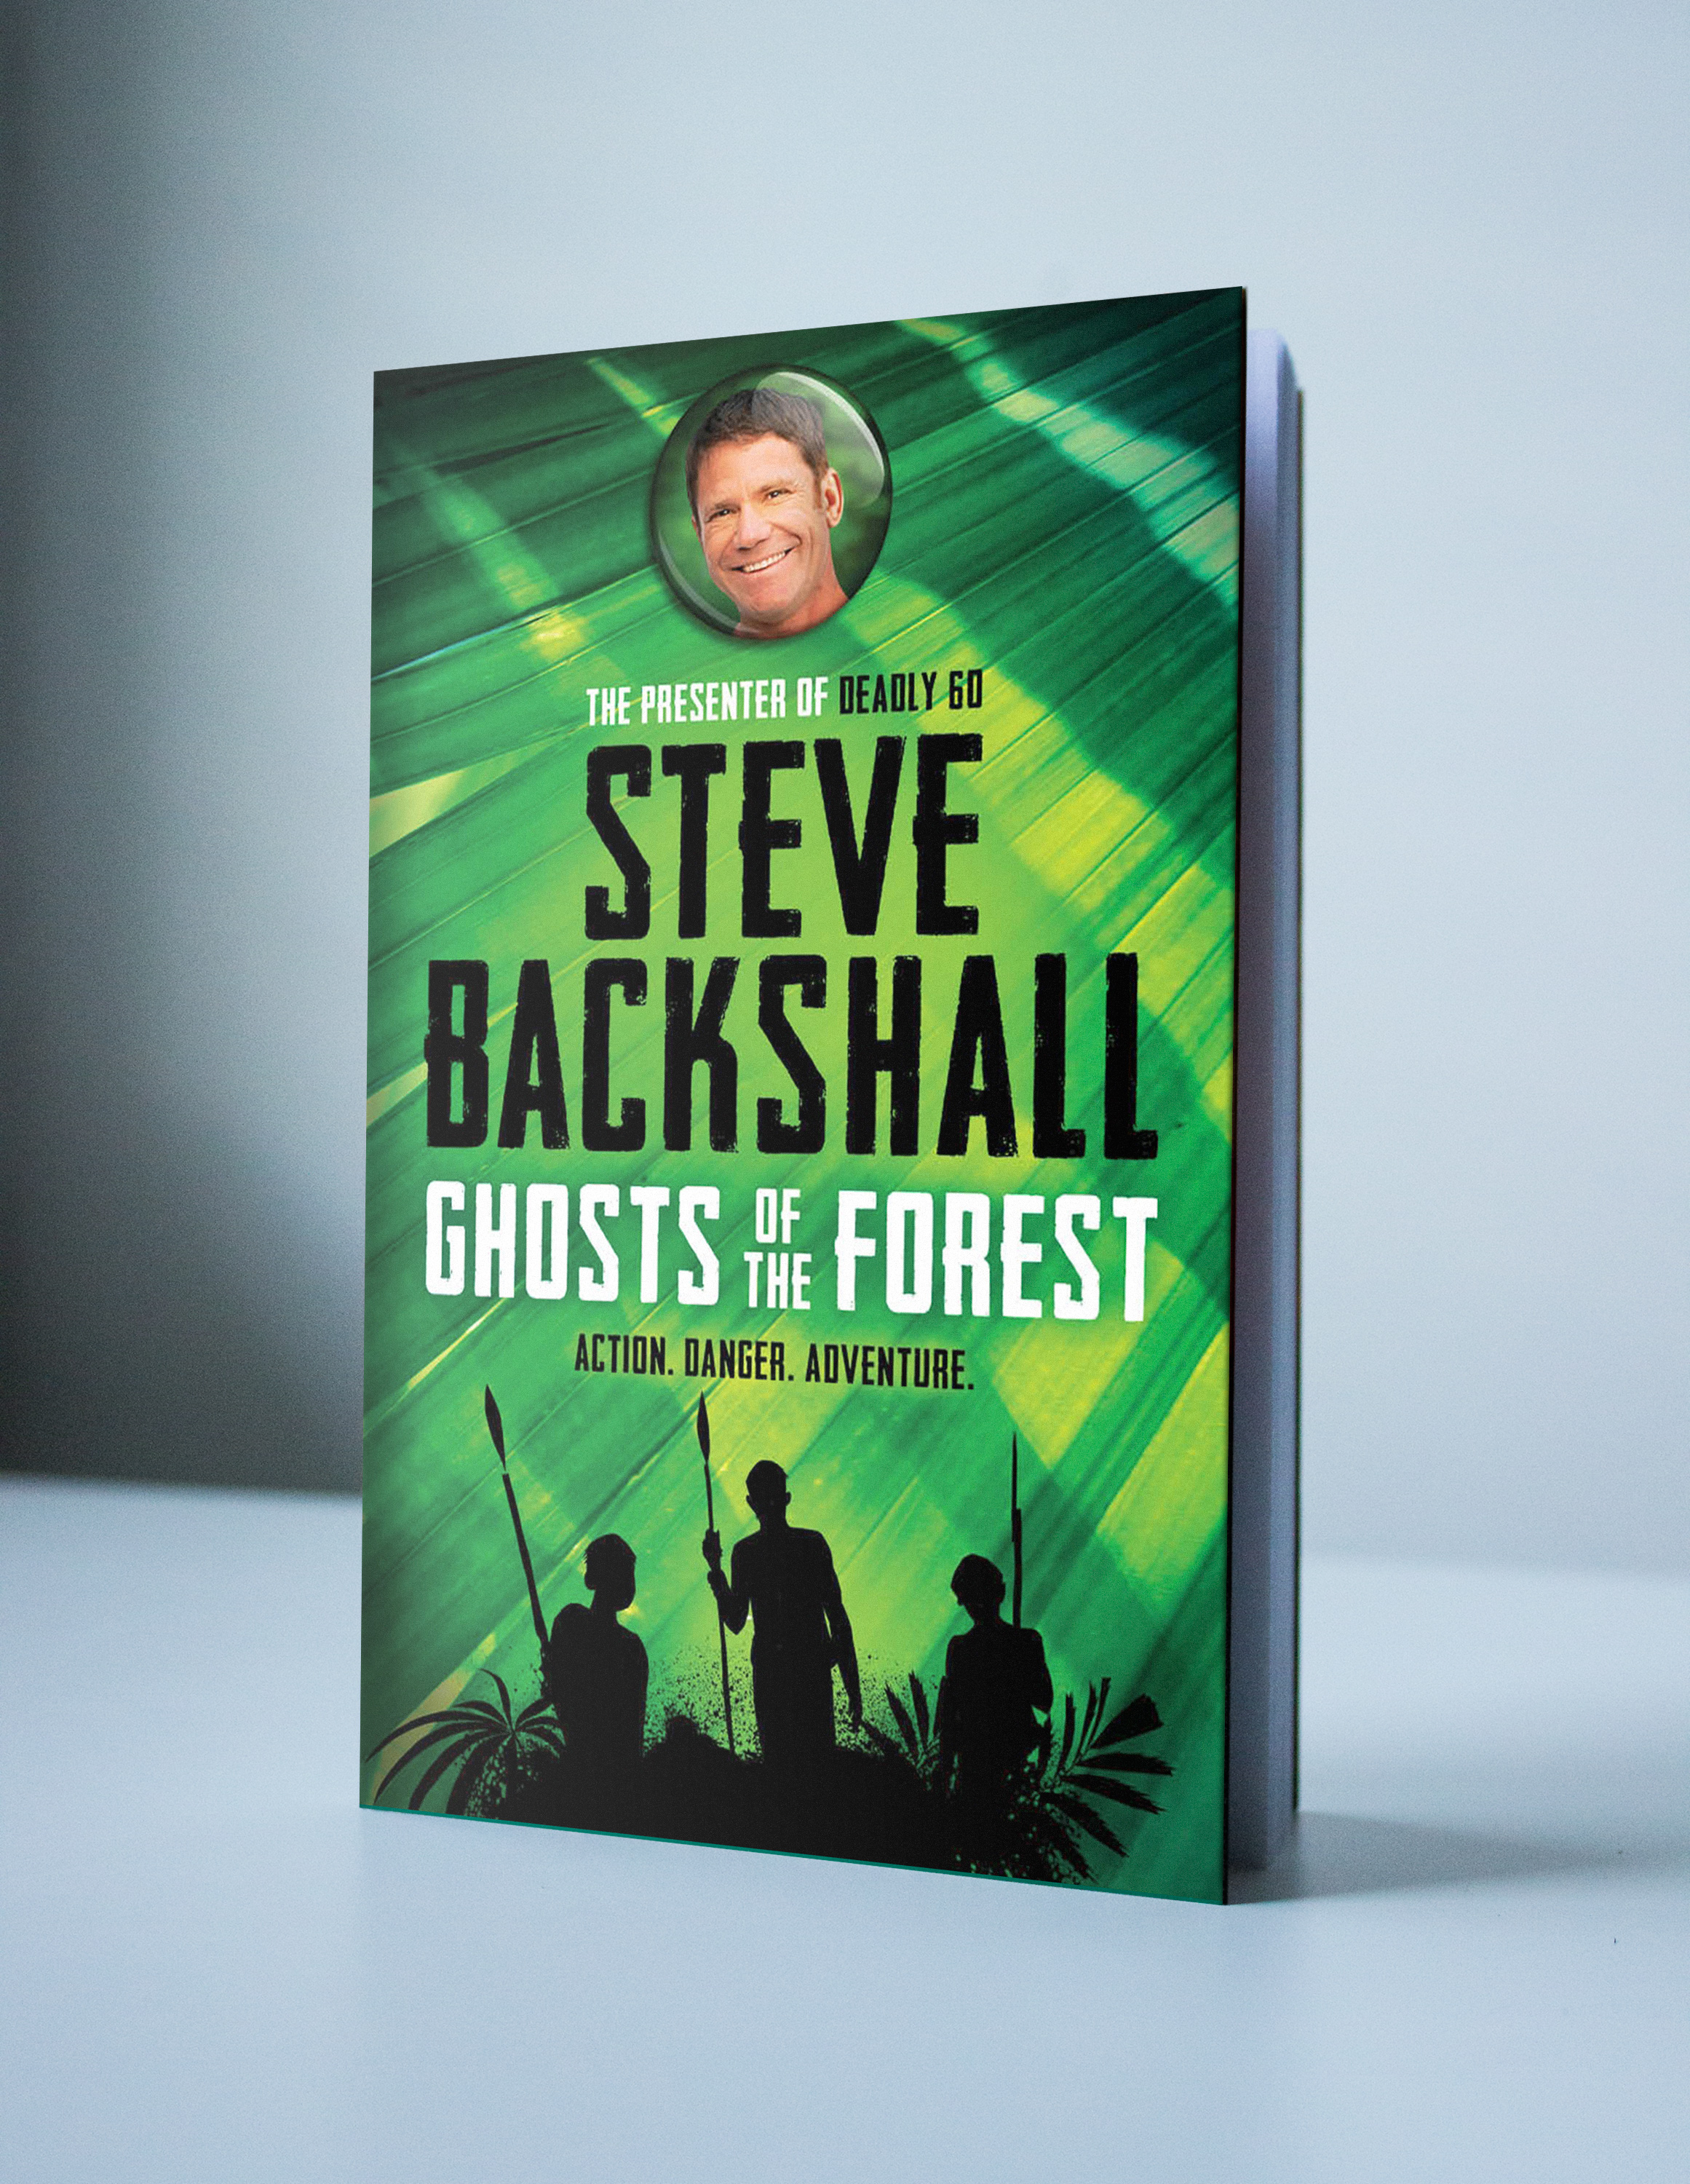 Steve Backshall Ghosts In The Forest